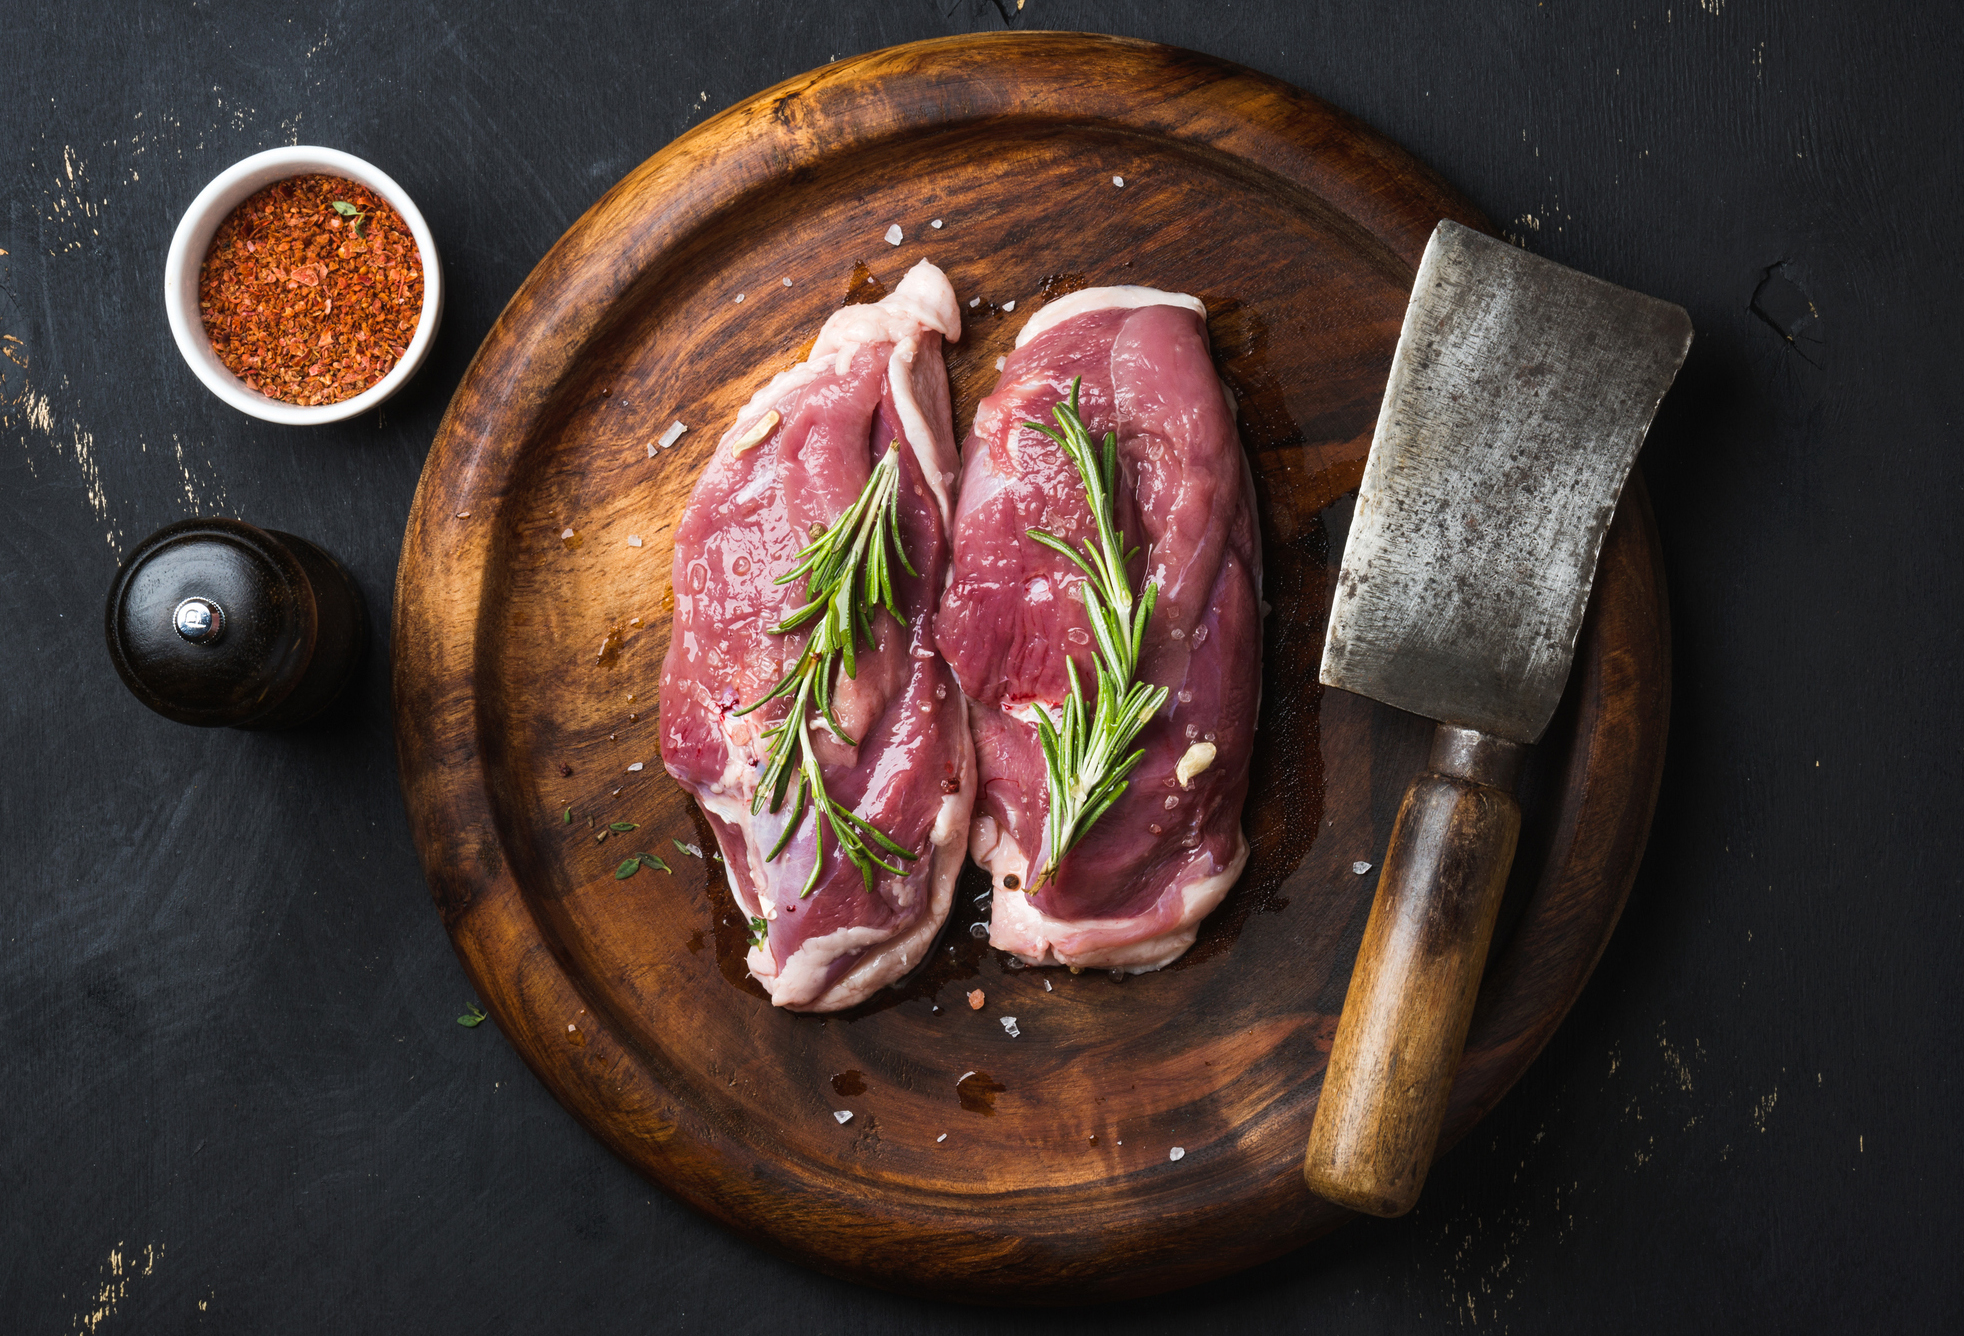 Fatty meat like duck is encouraged on the diet (Thinkstock/PA)